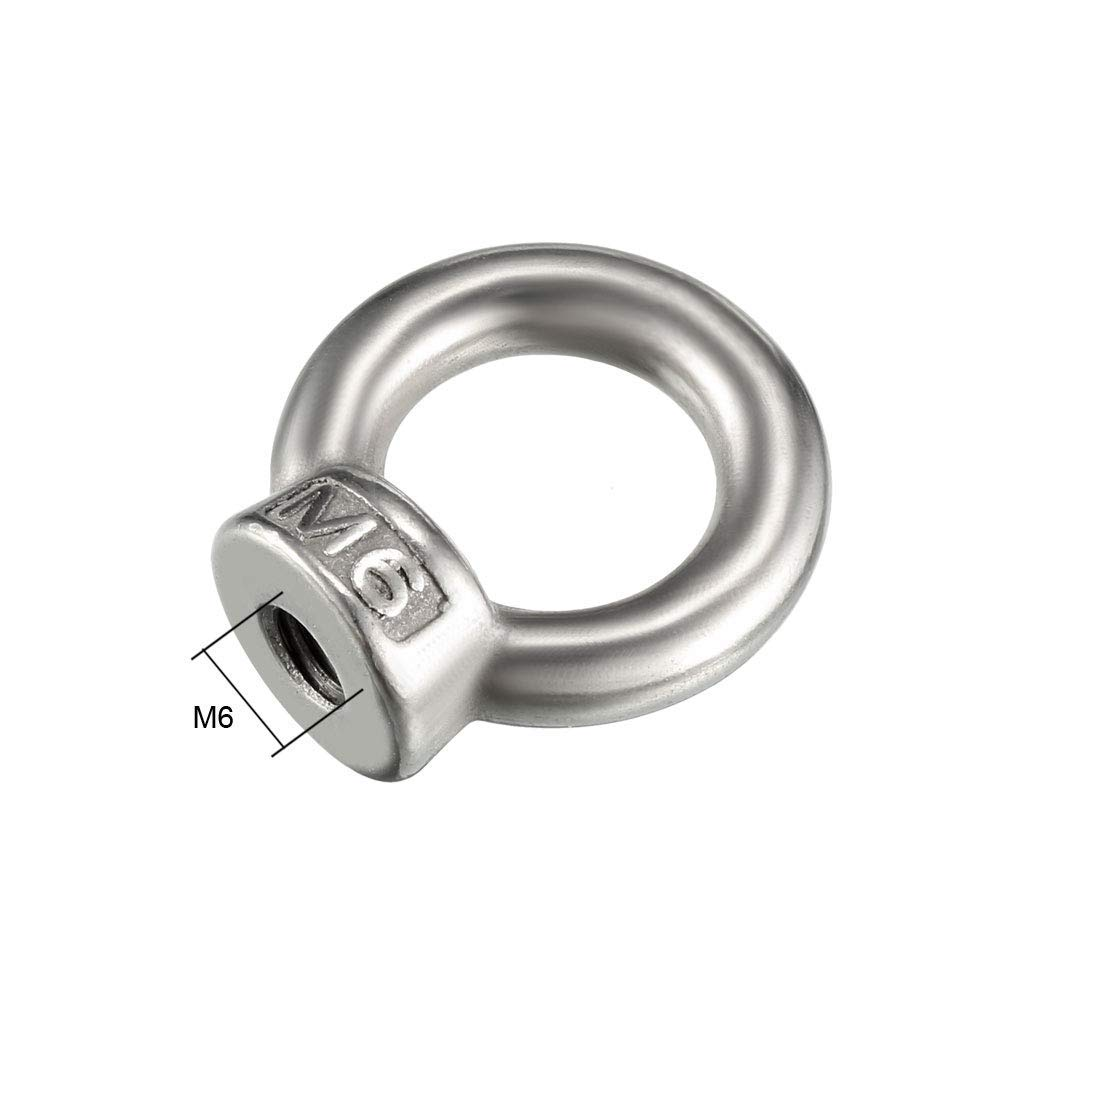 M6 Female Thread 304 Stainless Steel Eye Lifting Ring Nuts 5pcs